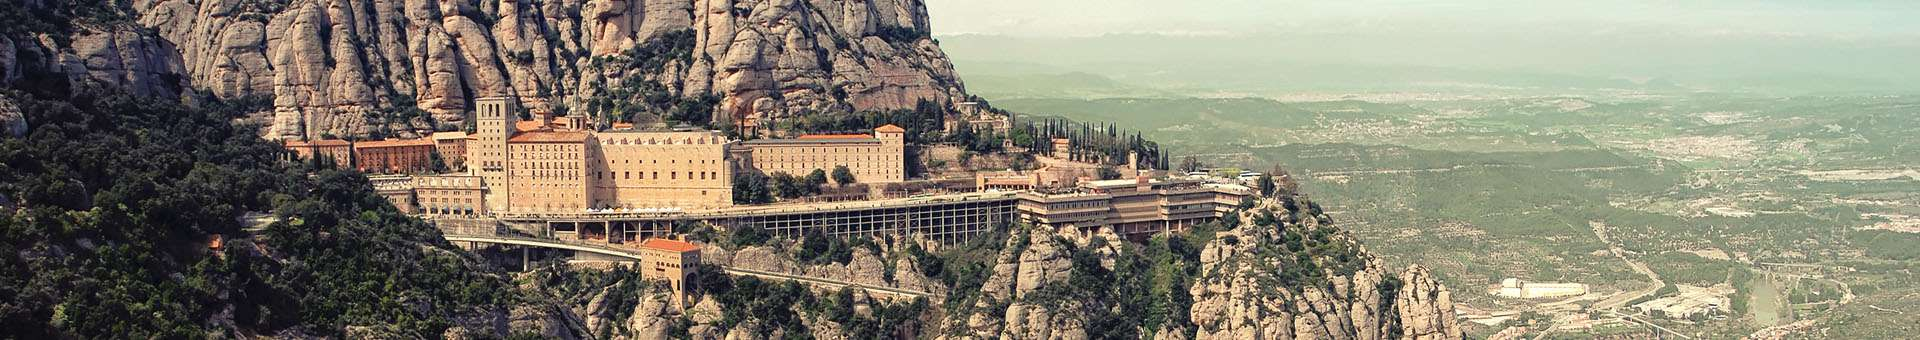 Search Whois information of domain names in Montserrat